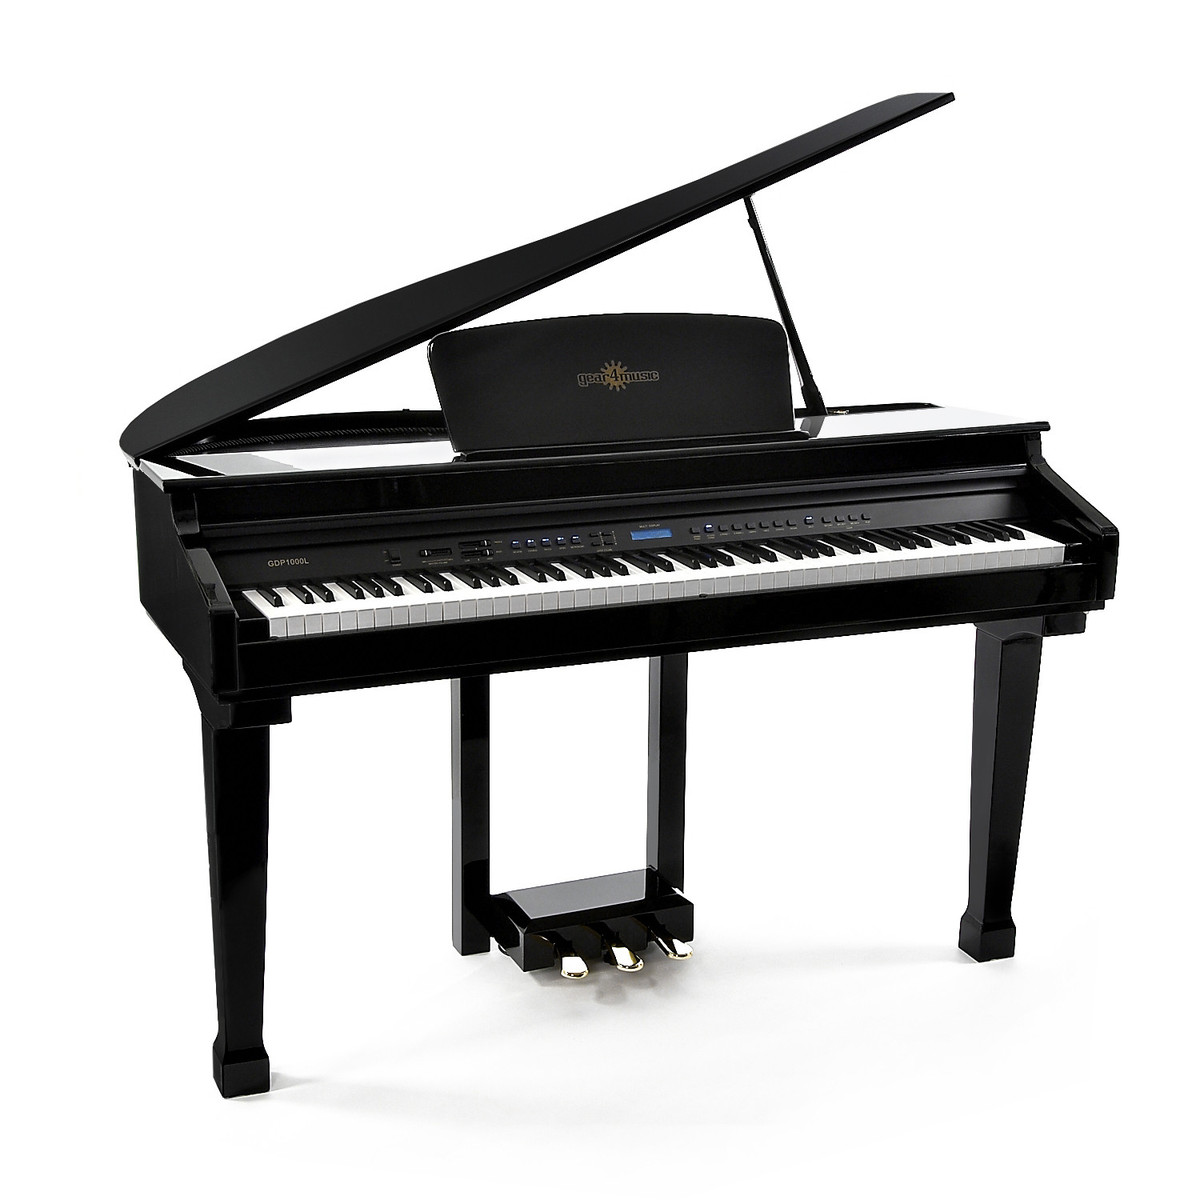 Gdp 100 digital grand piano by gear4music b stock at Size of baby grand piano